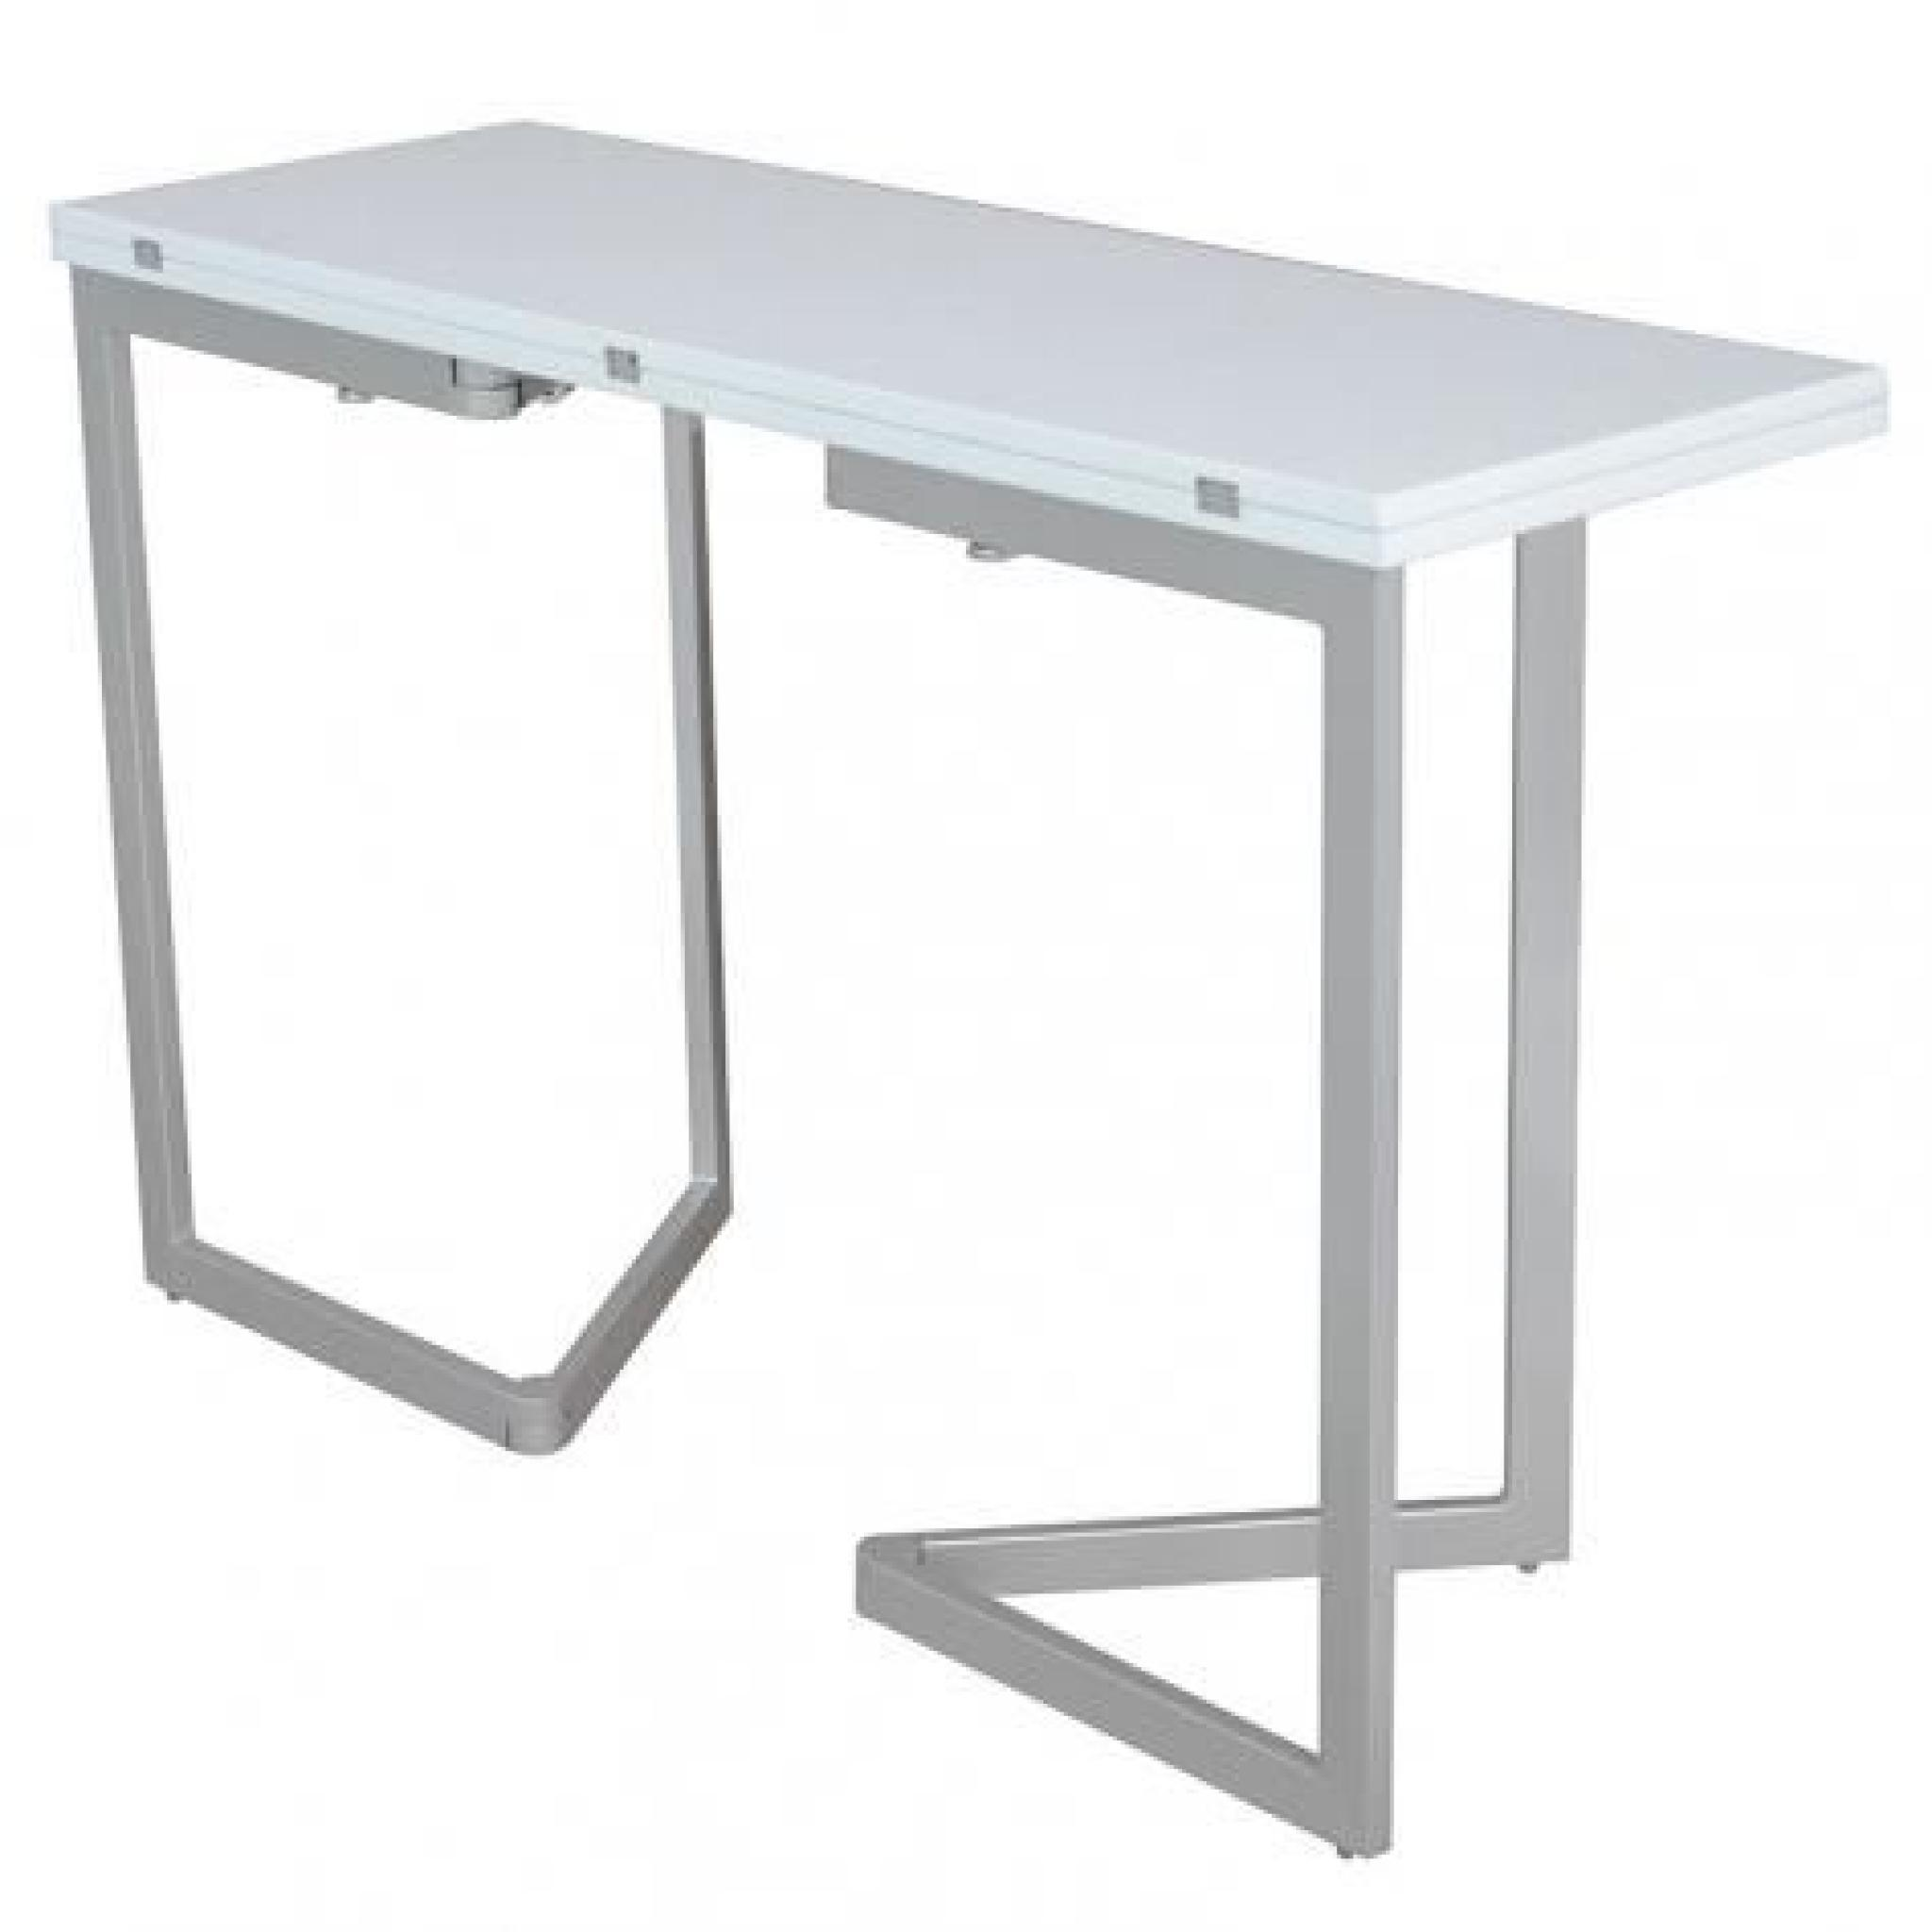 Table extensible blanche laquee 28 images table for Table salle a manger blanche extensible